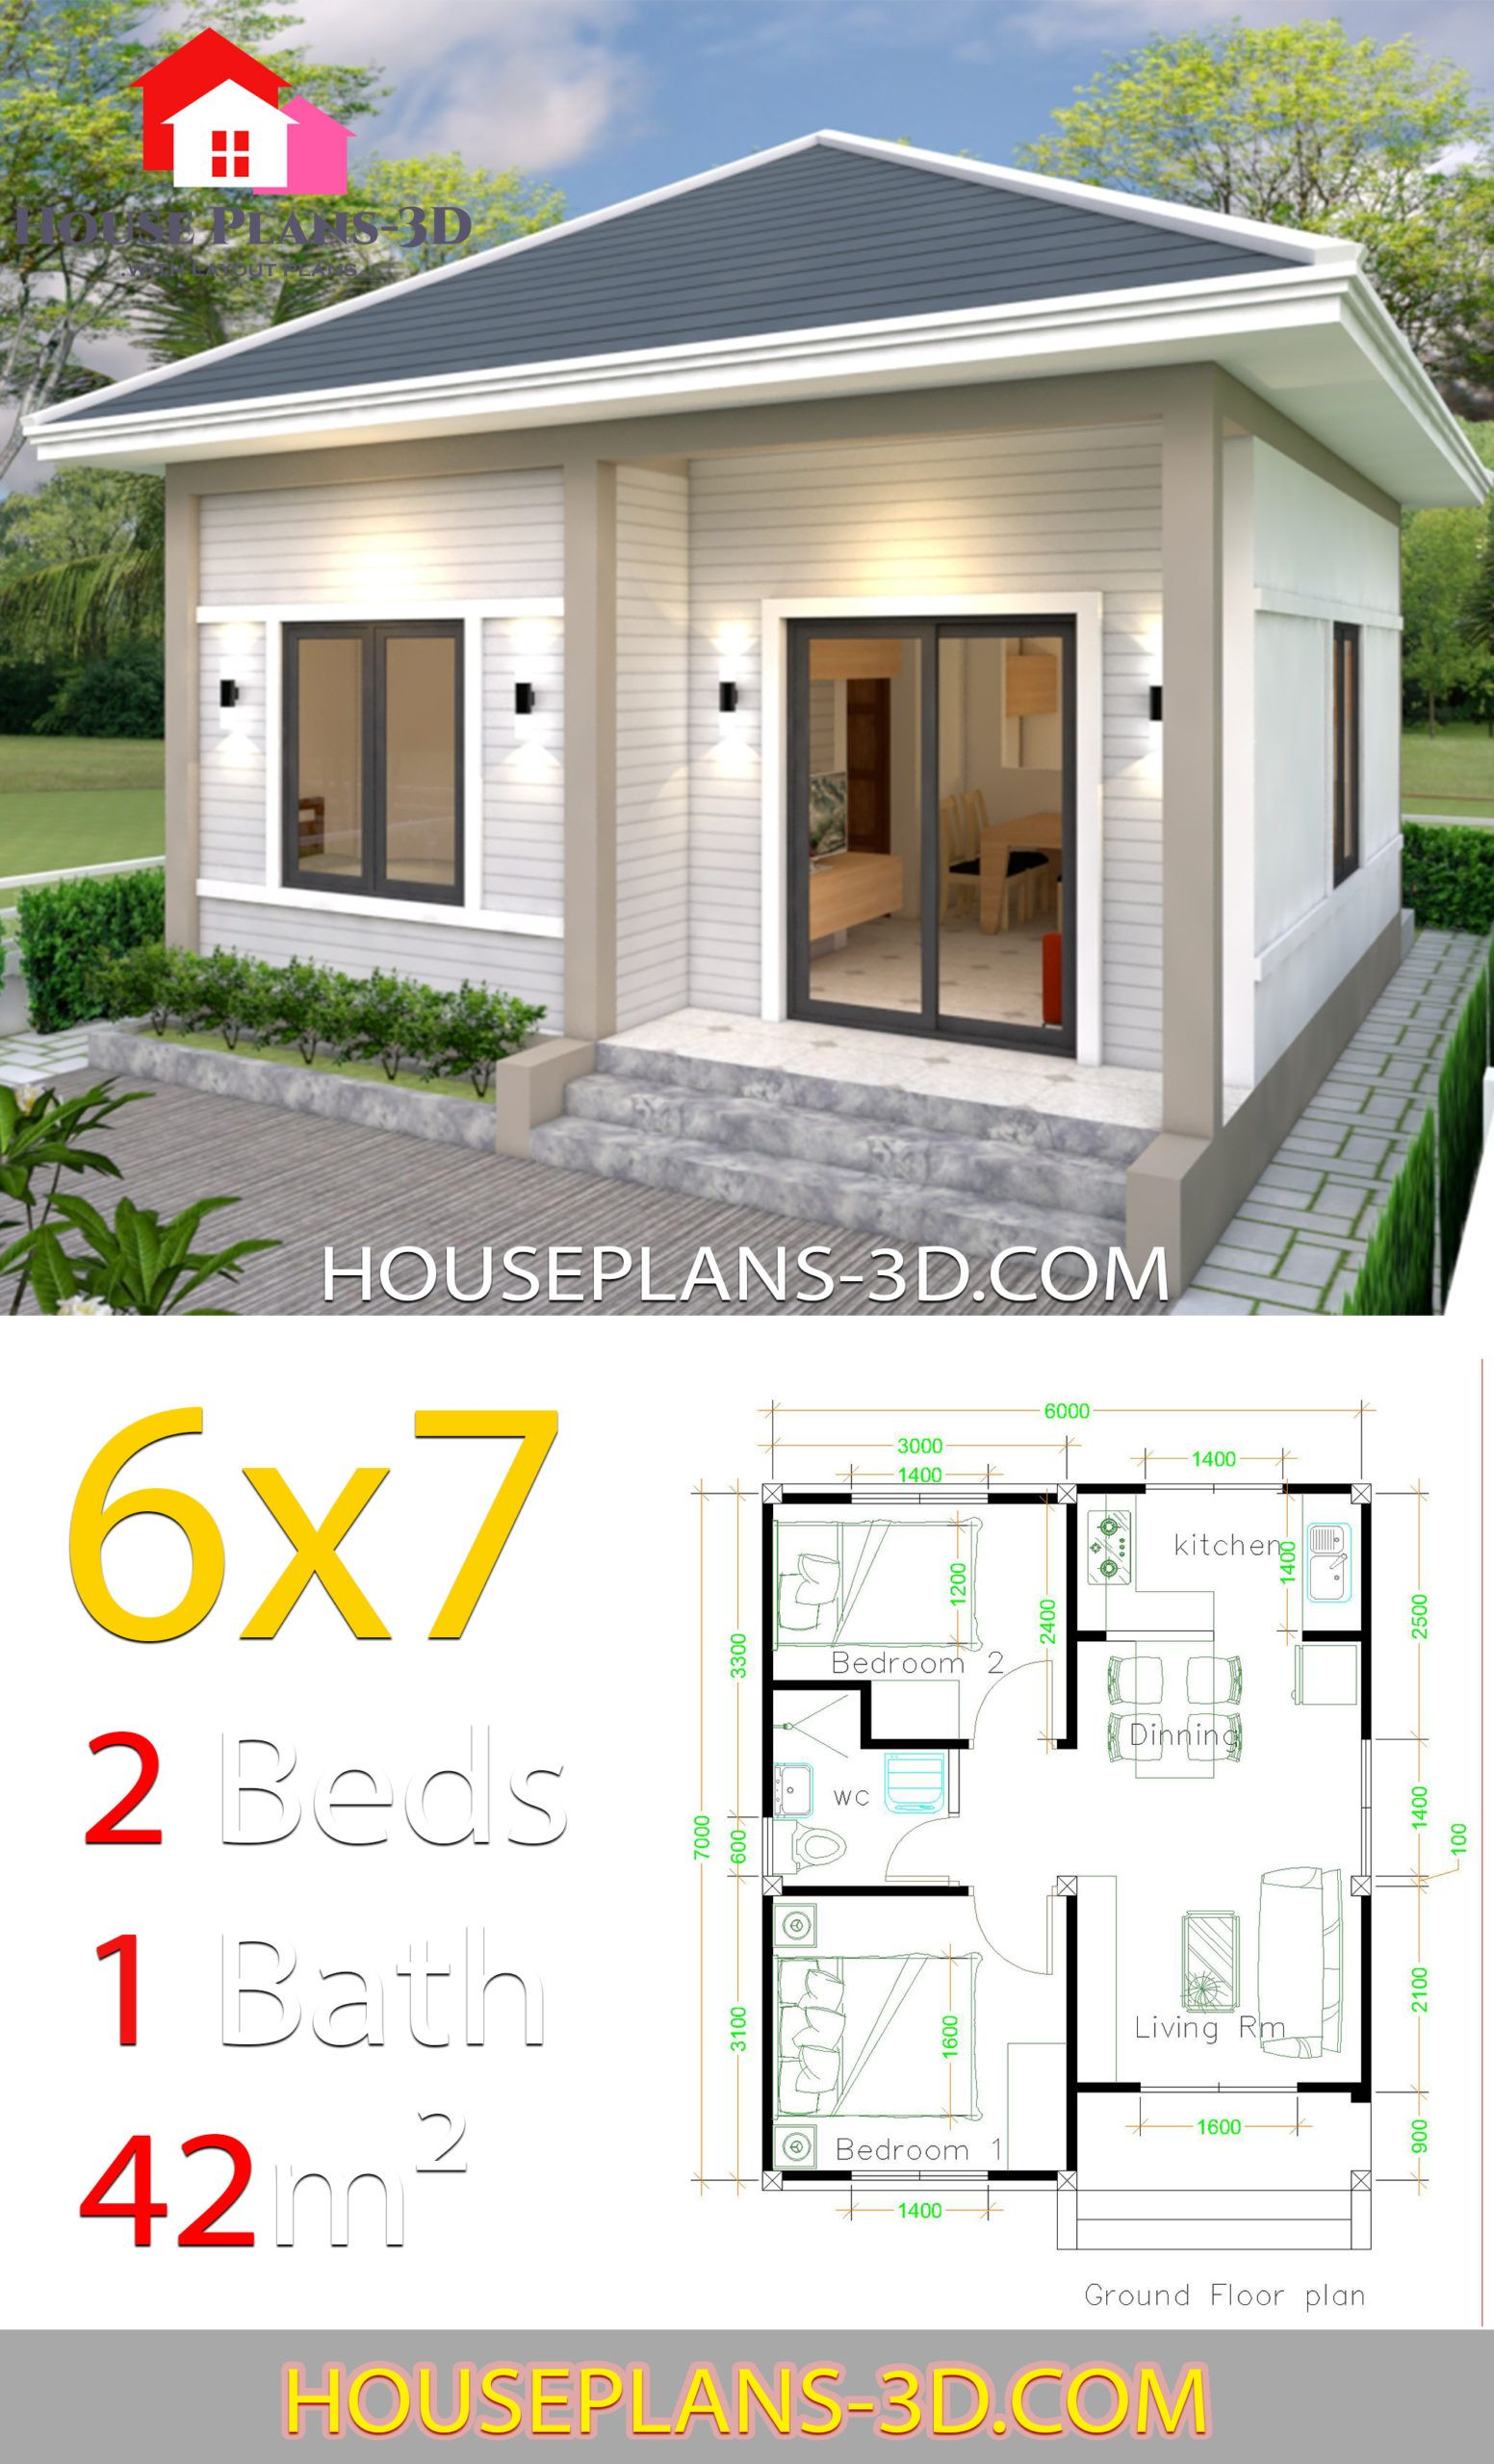 Simple House Plans 6x7 With 2 Bedrooms Hip Roof In 2020 Simple